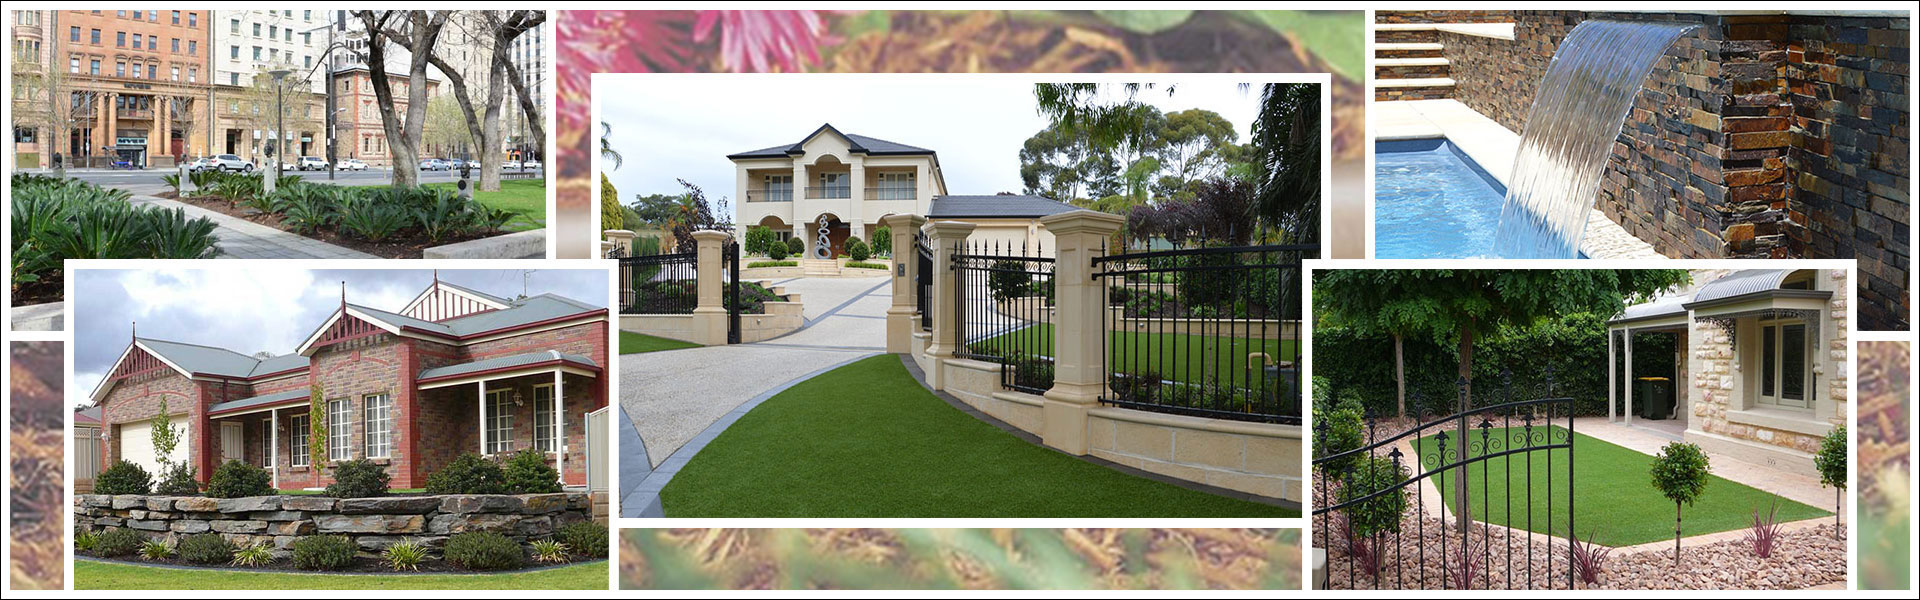 Landscaping Image Gallery | Visual Landscape Gardening